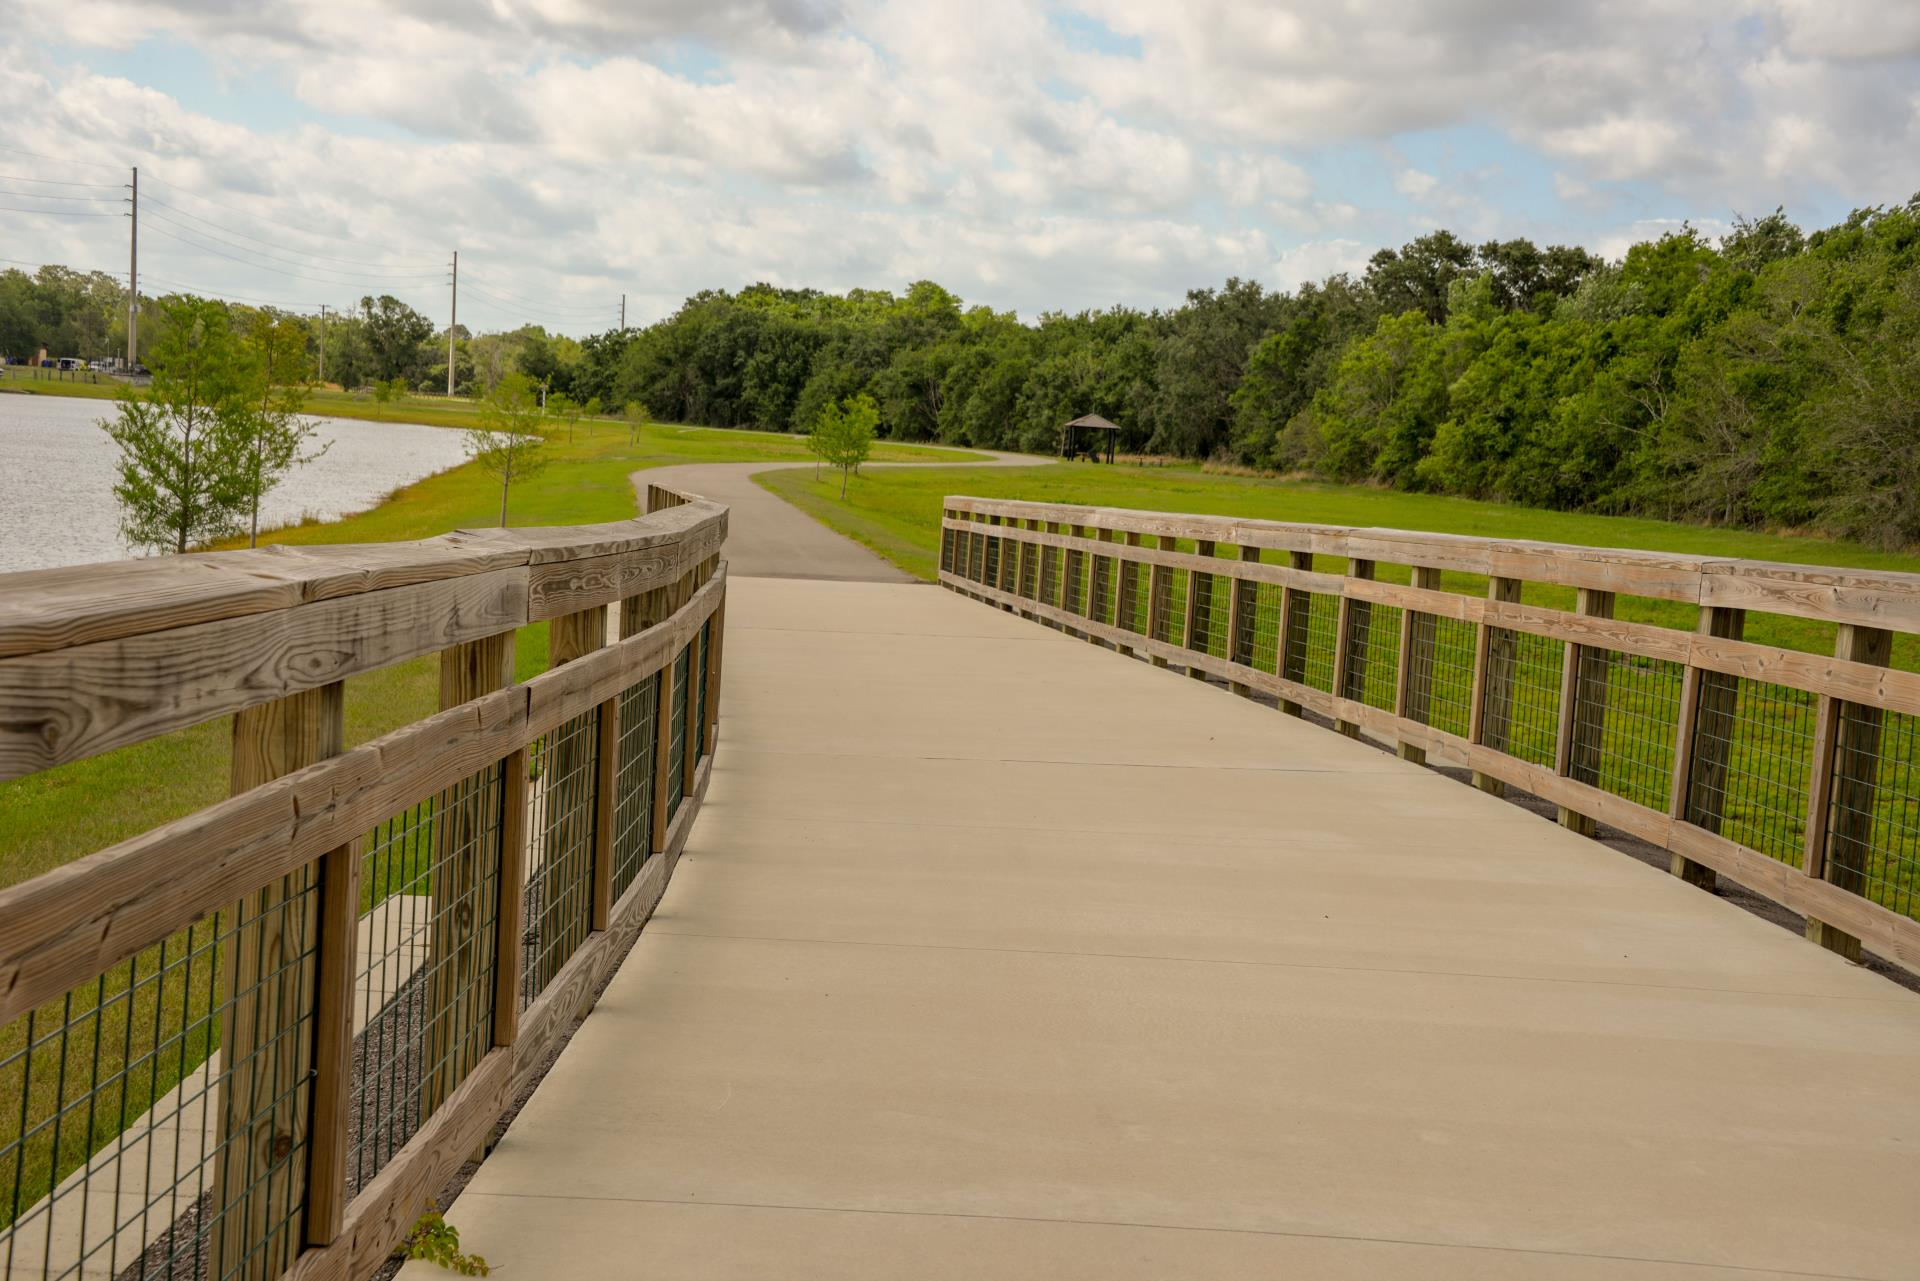 Shingle Creek Regional Trail Overlook onto Path with lakeview